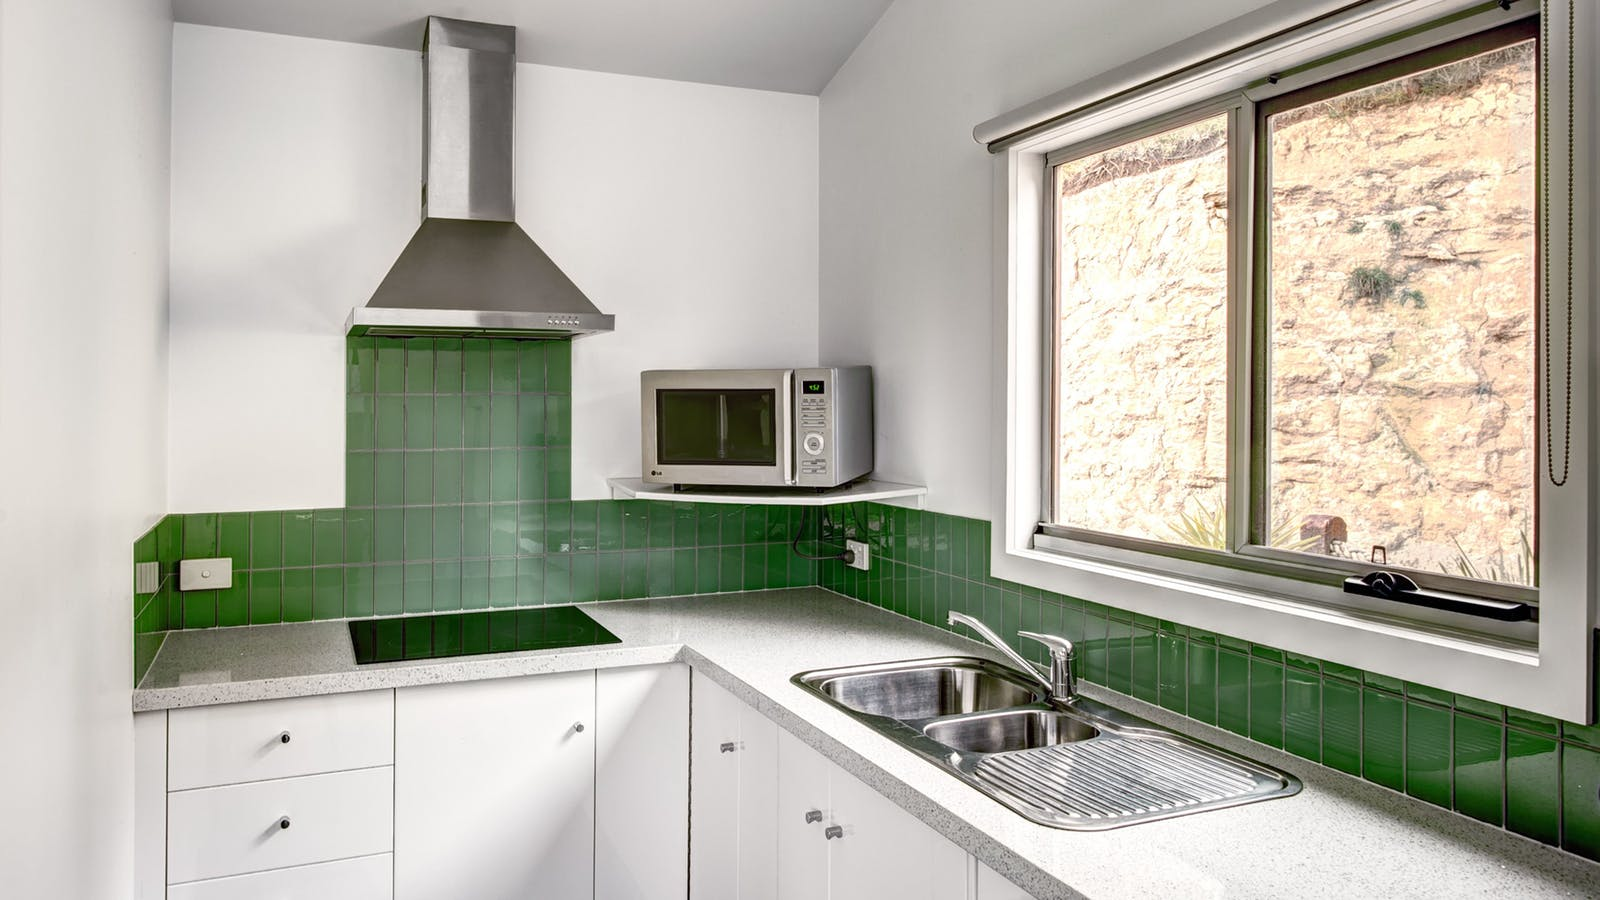 Kitchen for self-catering